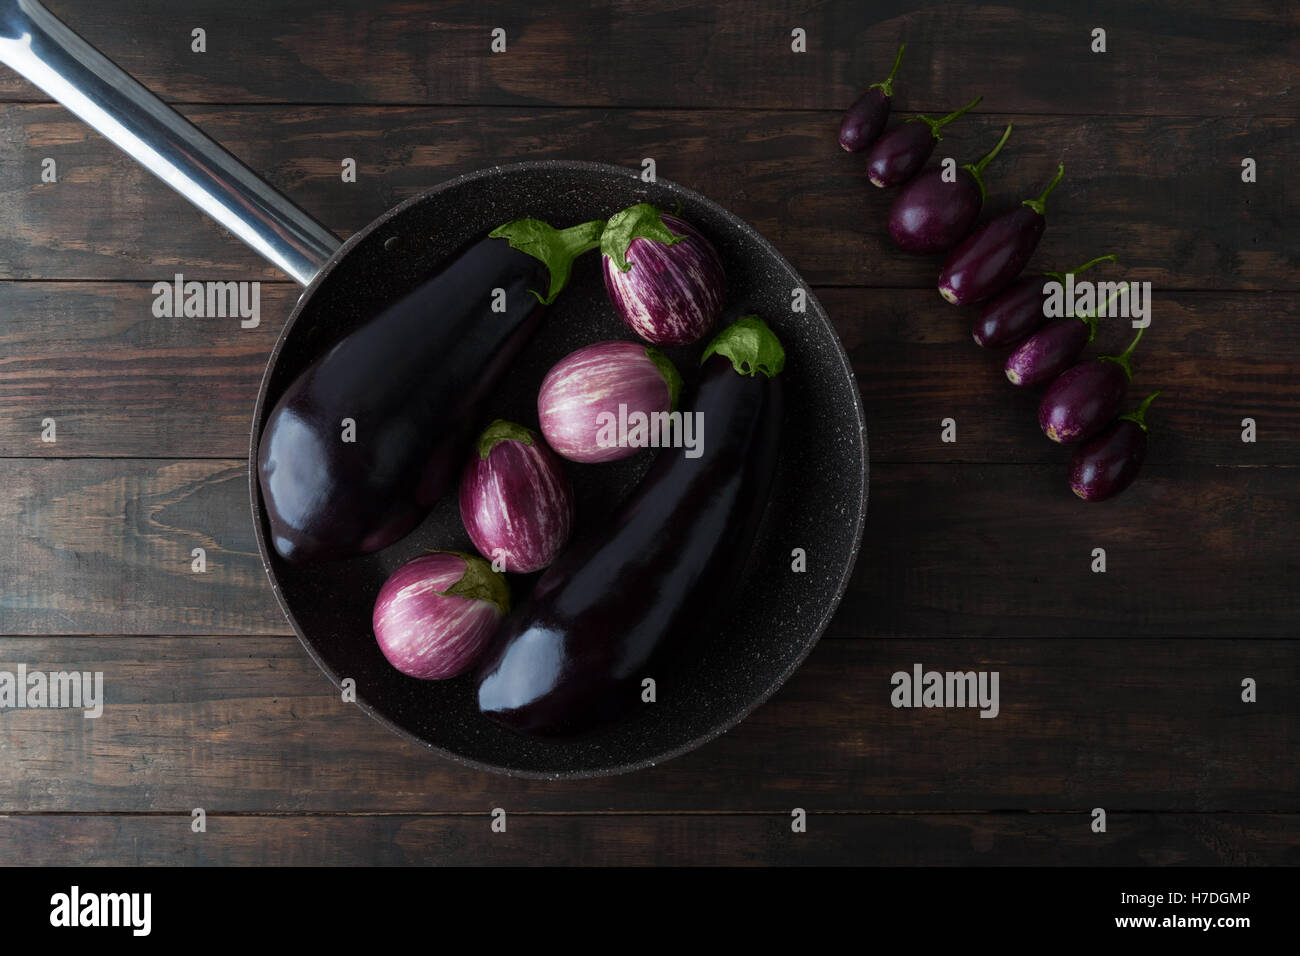 Eggplant varieties arranged on frying pan and wooden table. Top view. - Stock Image